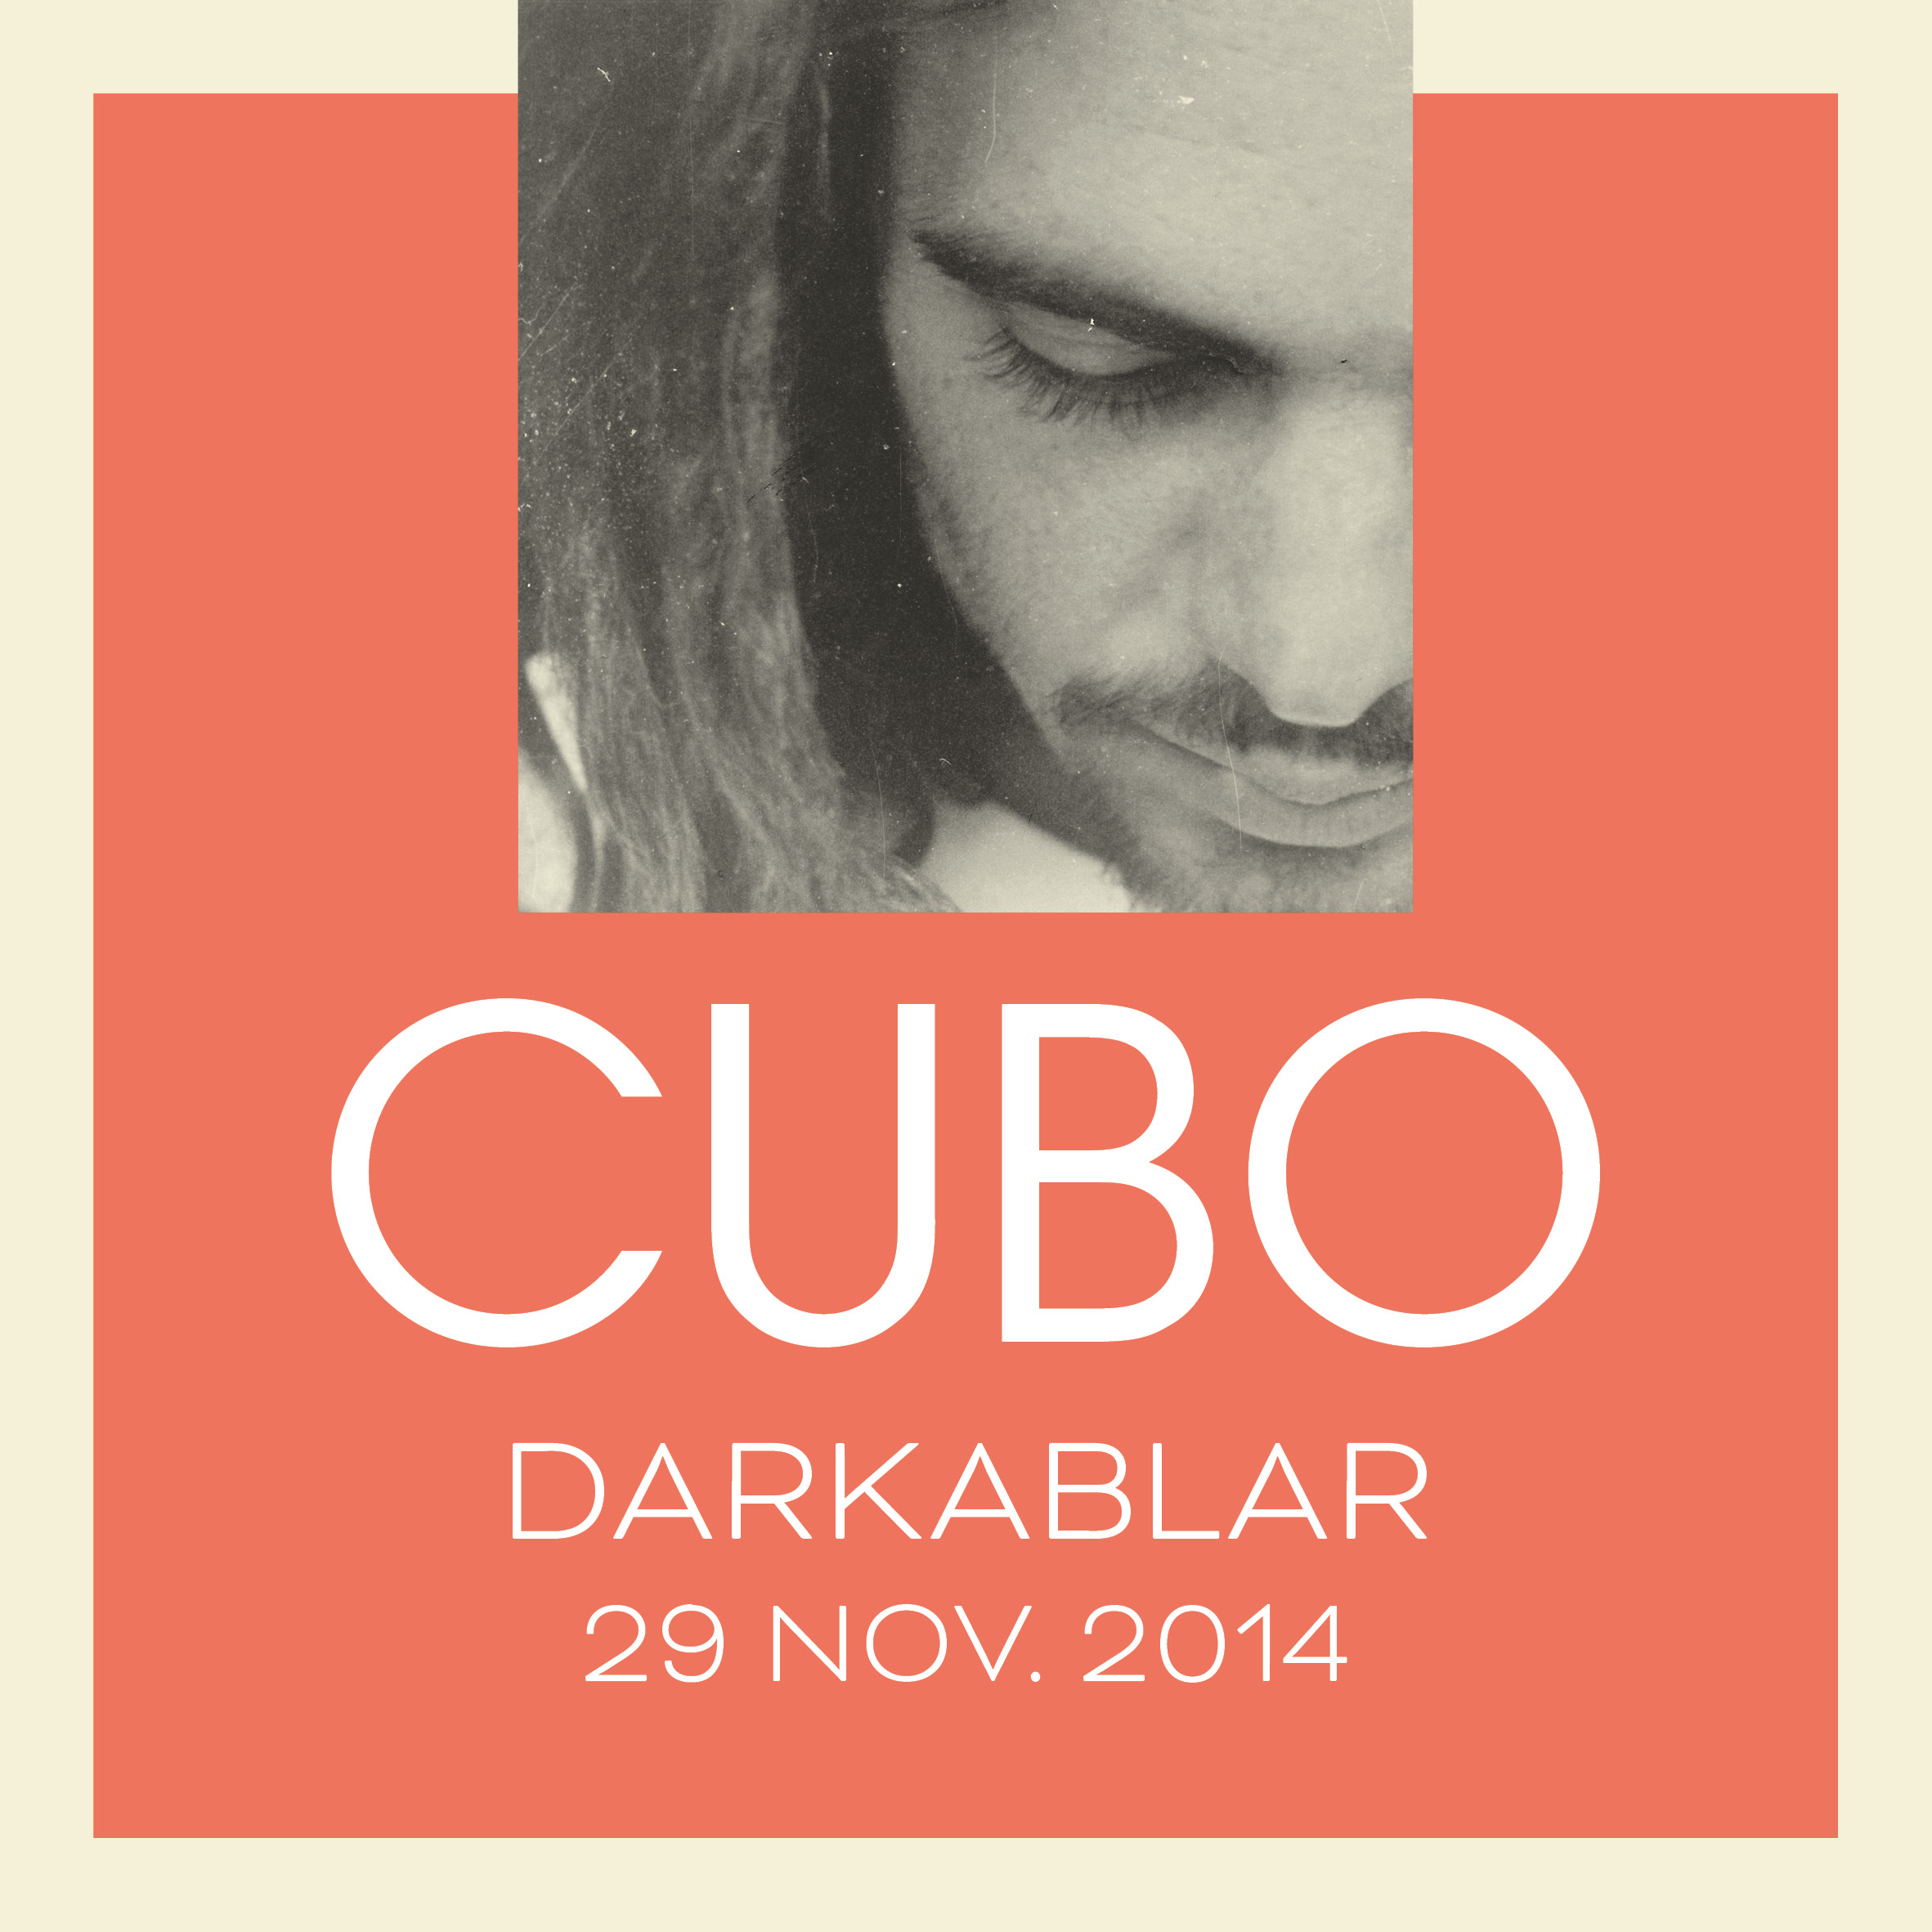 cubo_darkablar_29nov2014